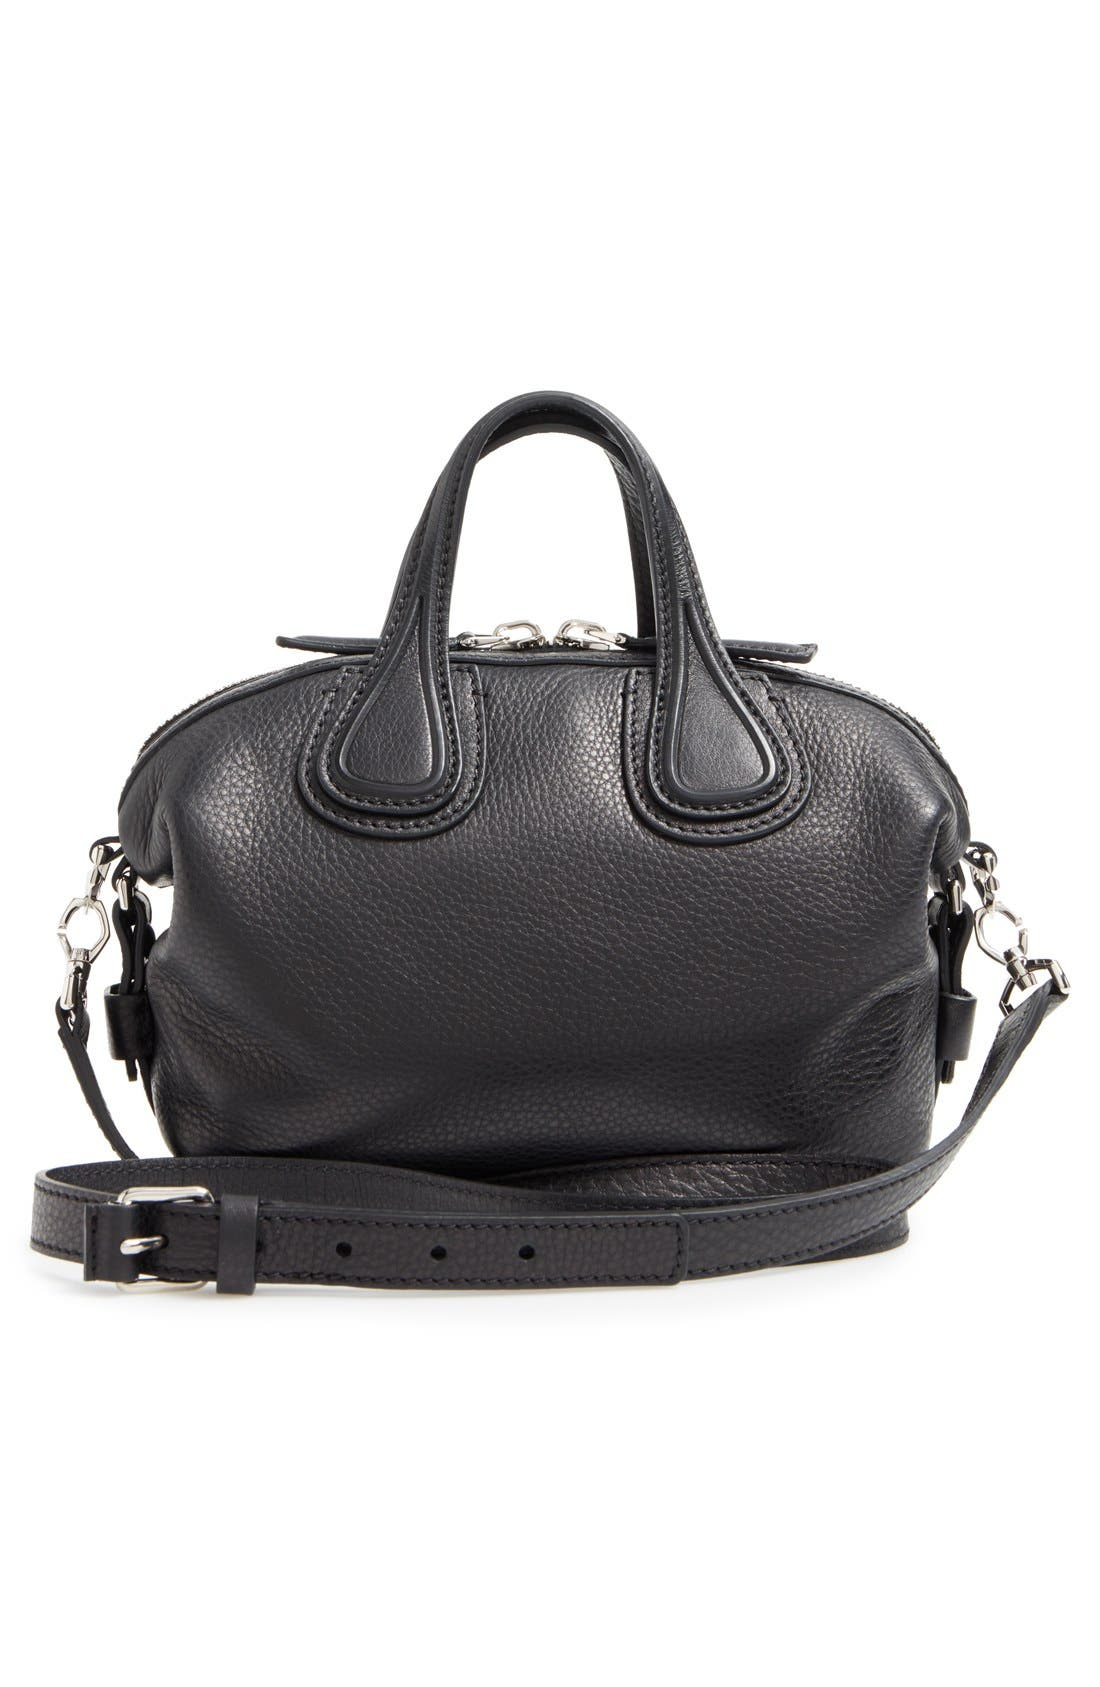 GIVENCHY, Micro Nightingale Leather Satchel, Alternate thumbnail 2, color, 001